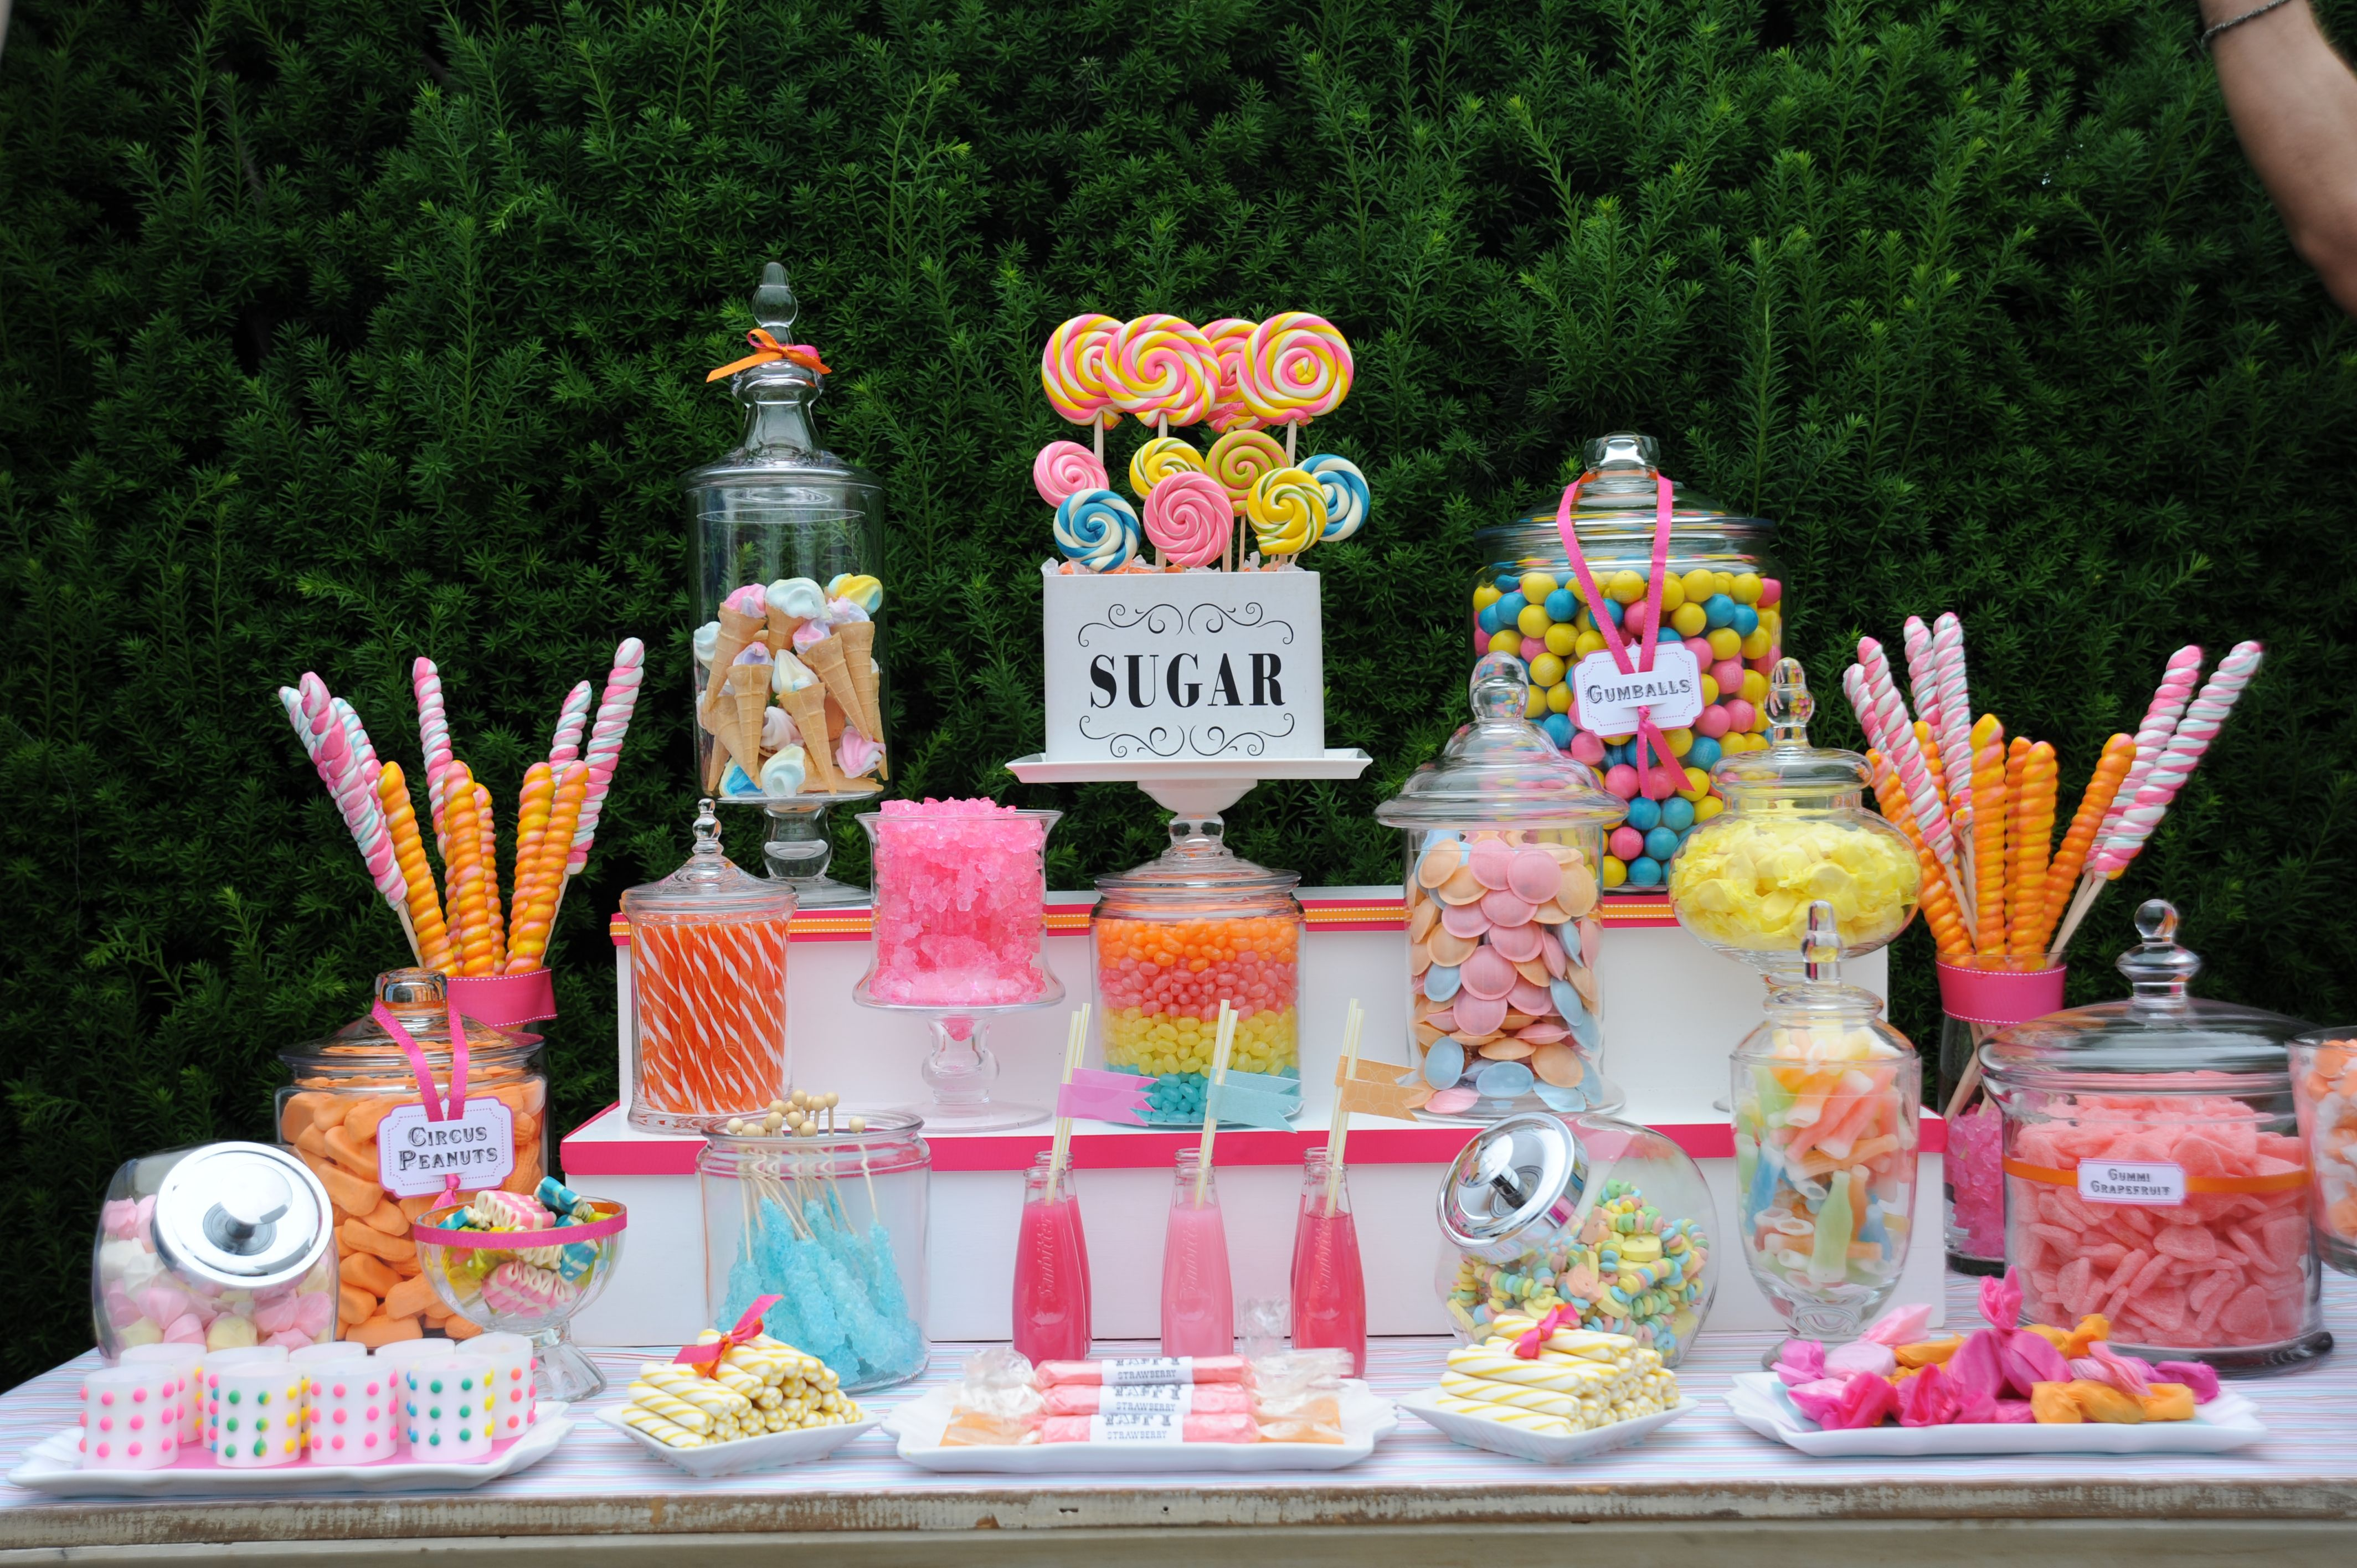 wedding shower candy buffet ideas%0A images of candy buffets at bridal expos   Candyland Candy Buffet   candy  buffets   Pinterest   Candy land  Buffet and Candyland